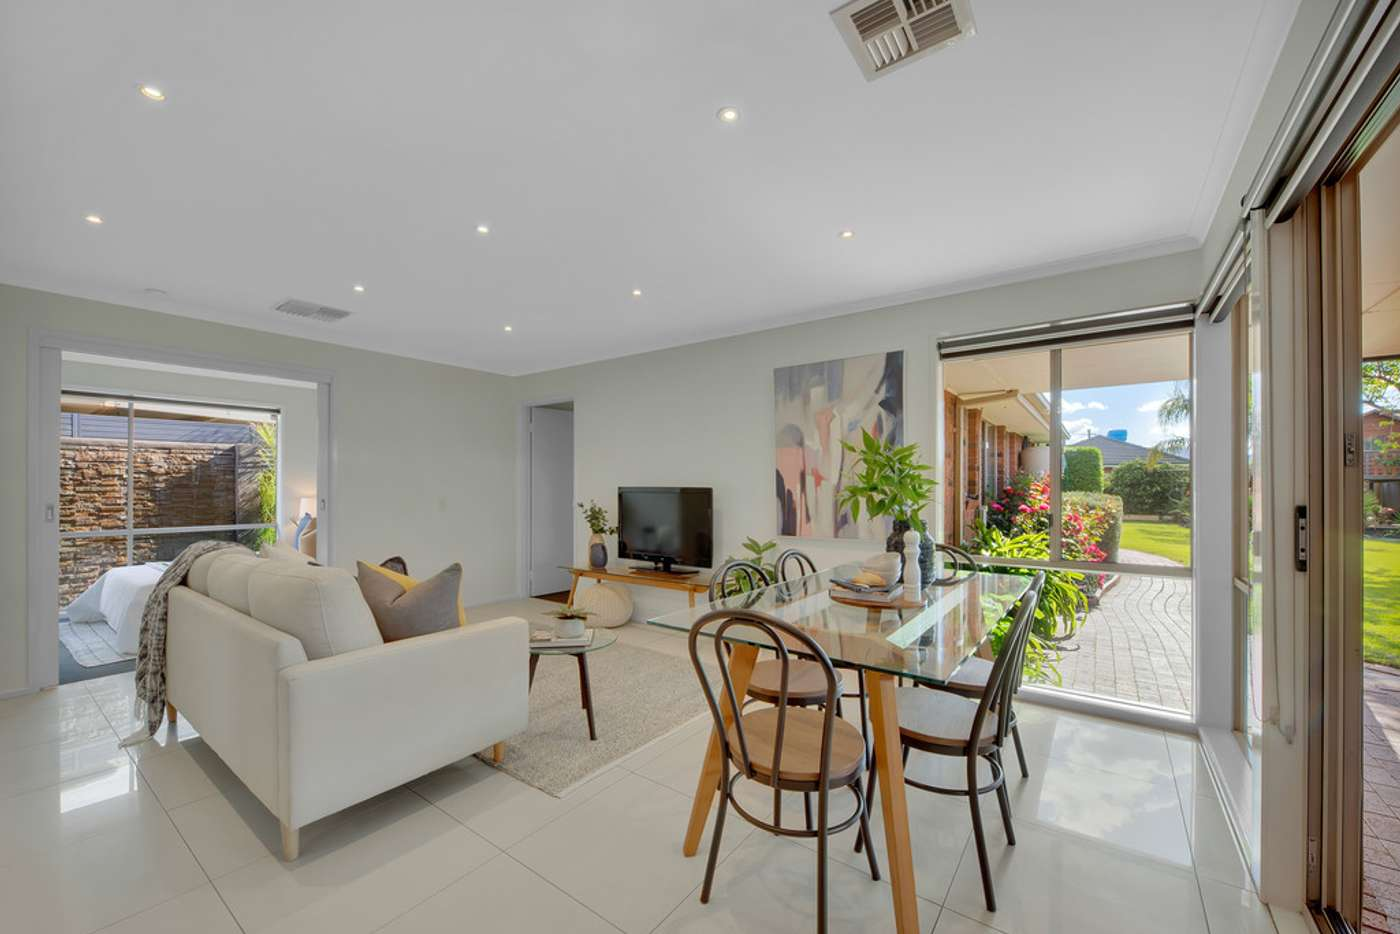 Sixth view of Homely house listing, 23 Kyle Court, Wodonga VIC 3690